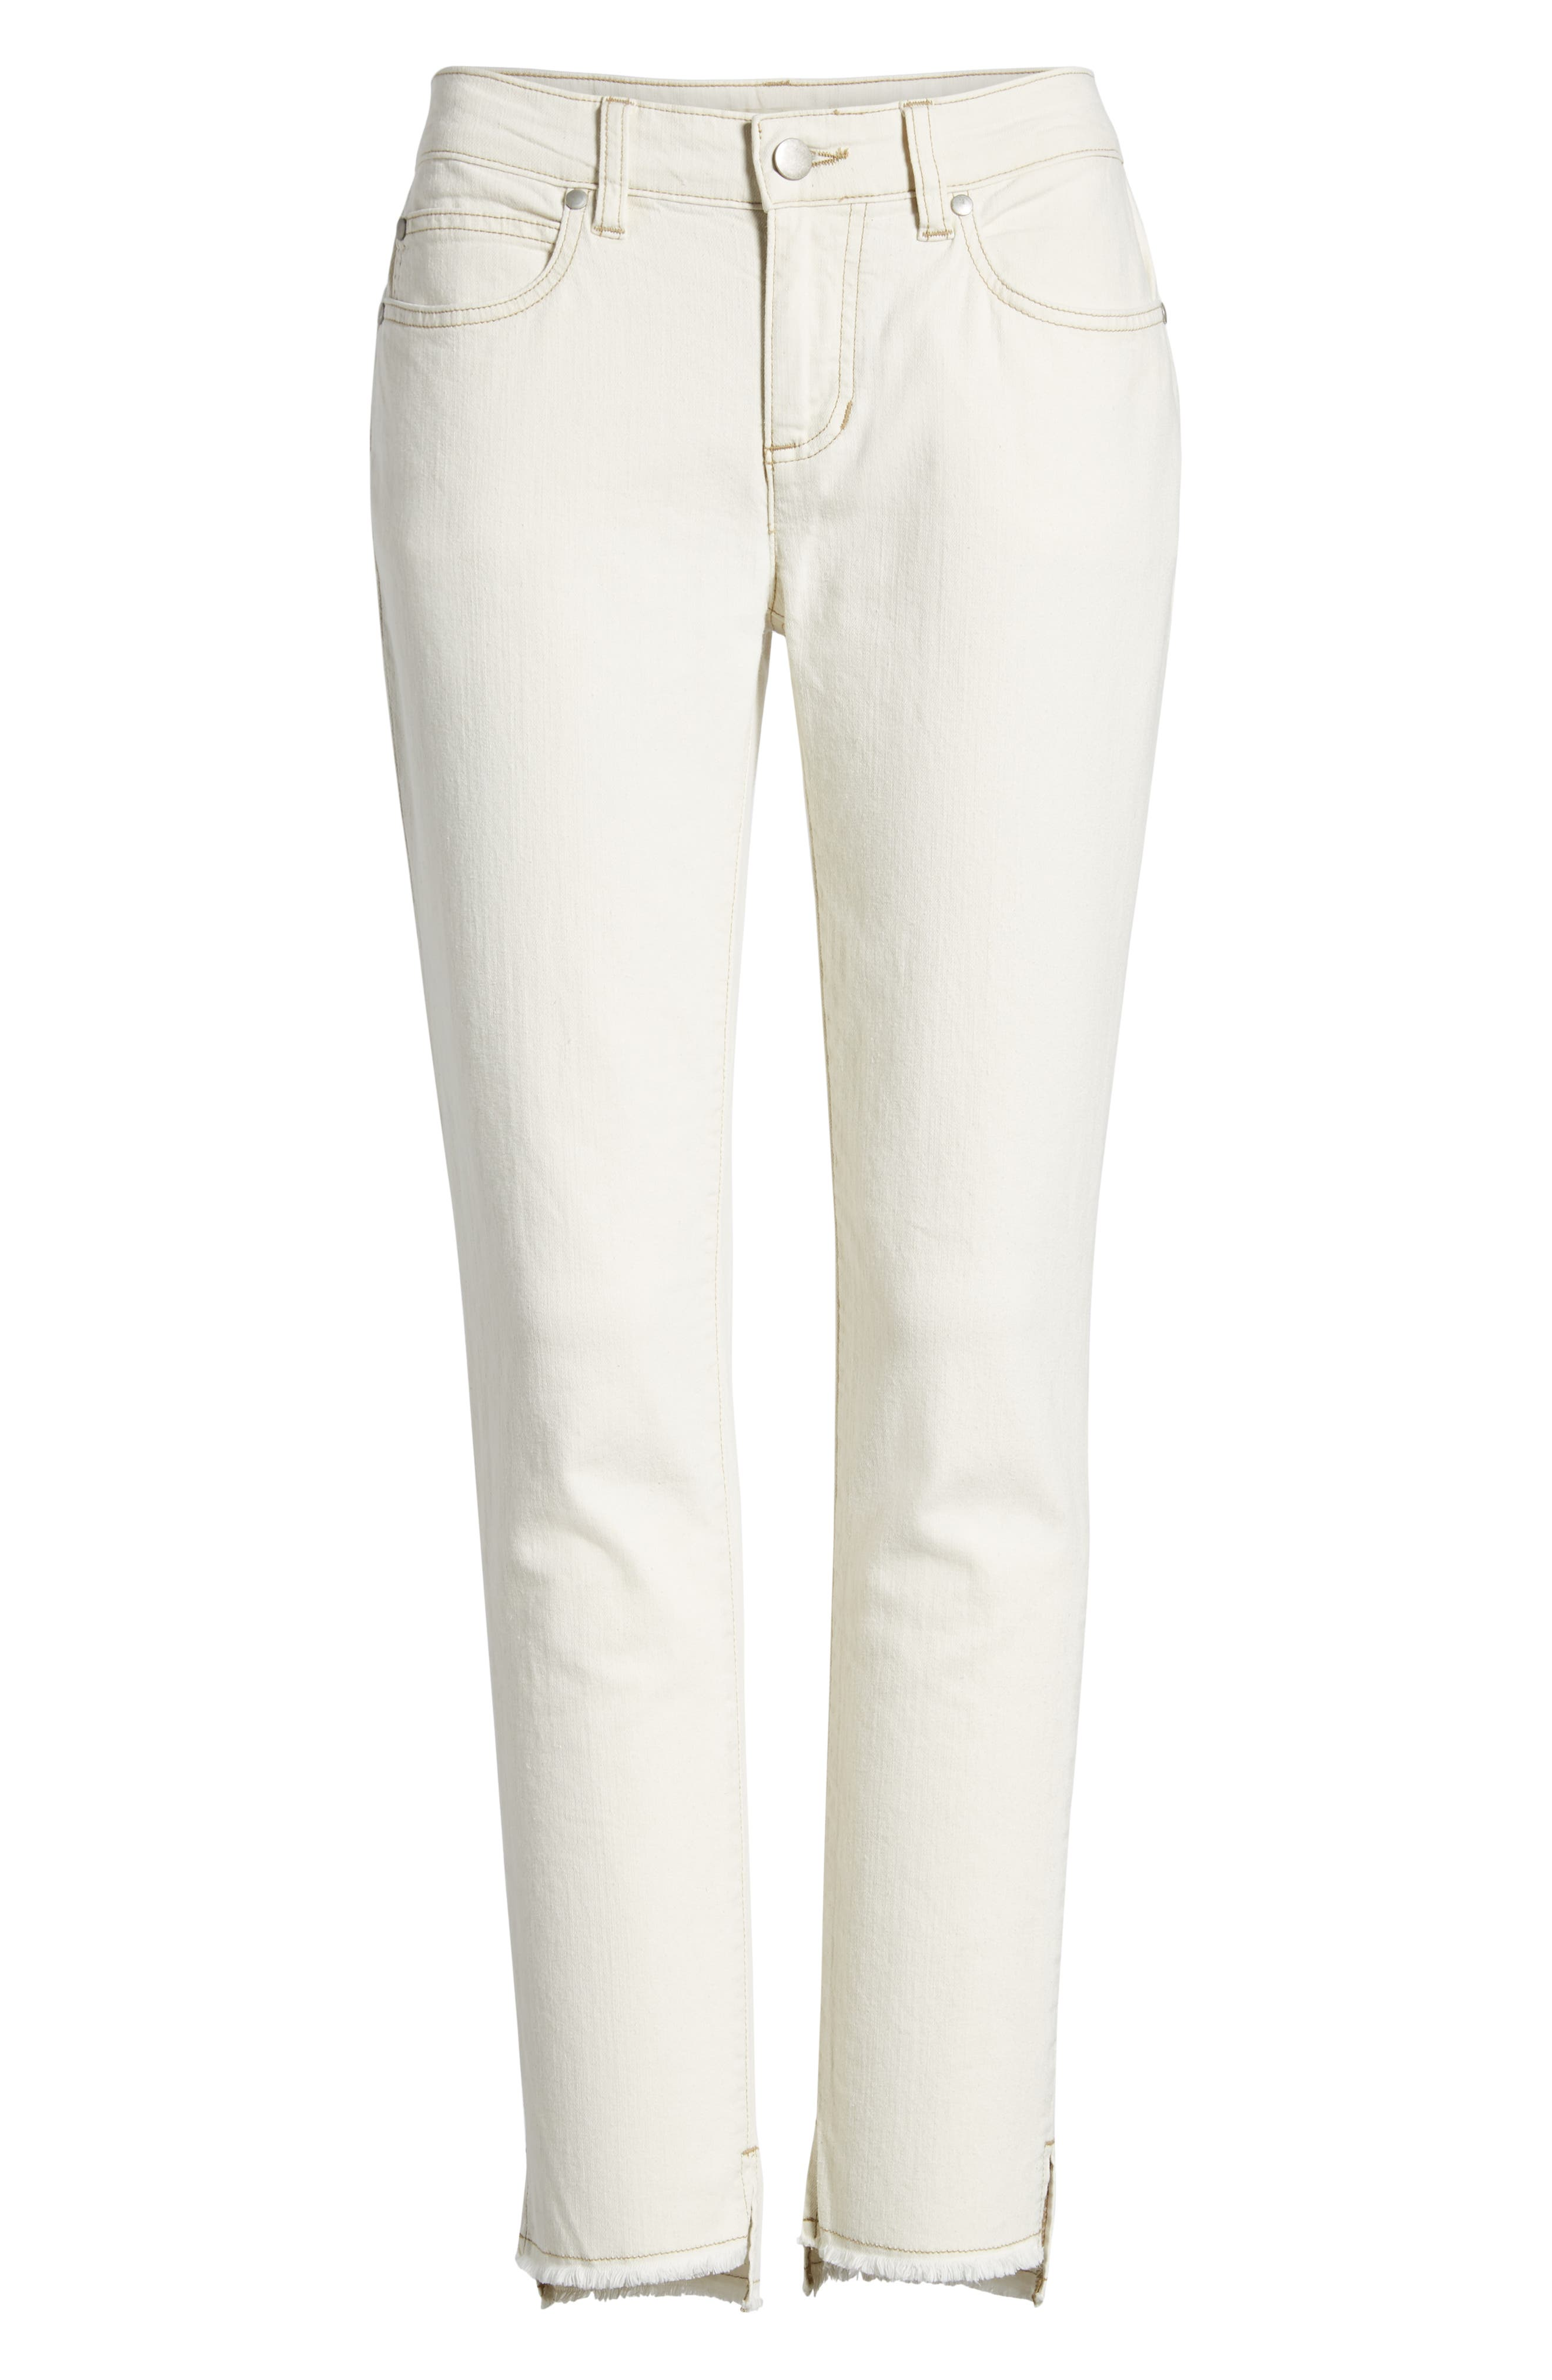 Stretch Organic Cotton Slim Ankle Jeans,                             Alternate thumbnail 6, color,                             901